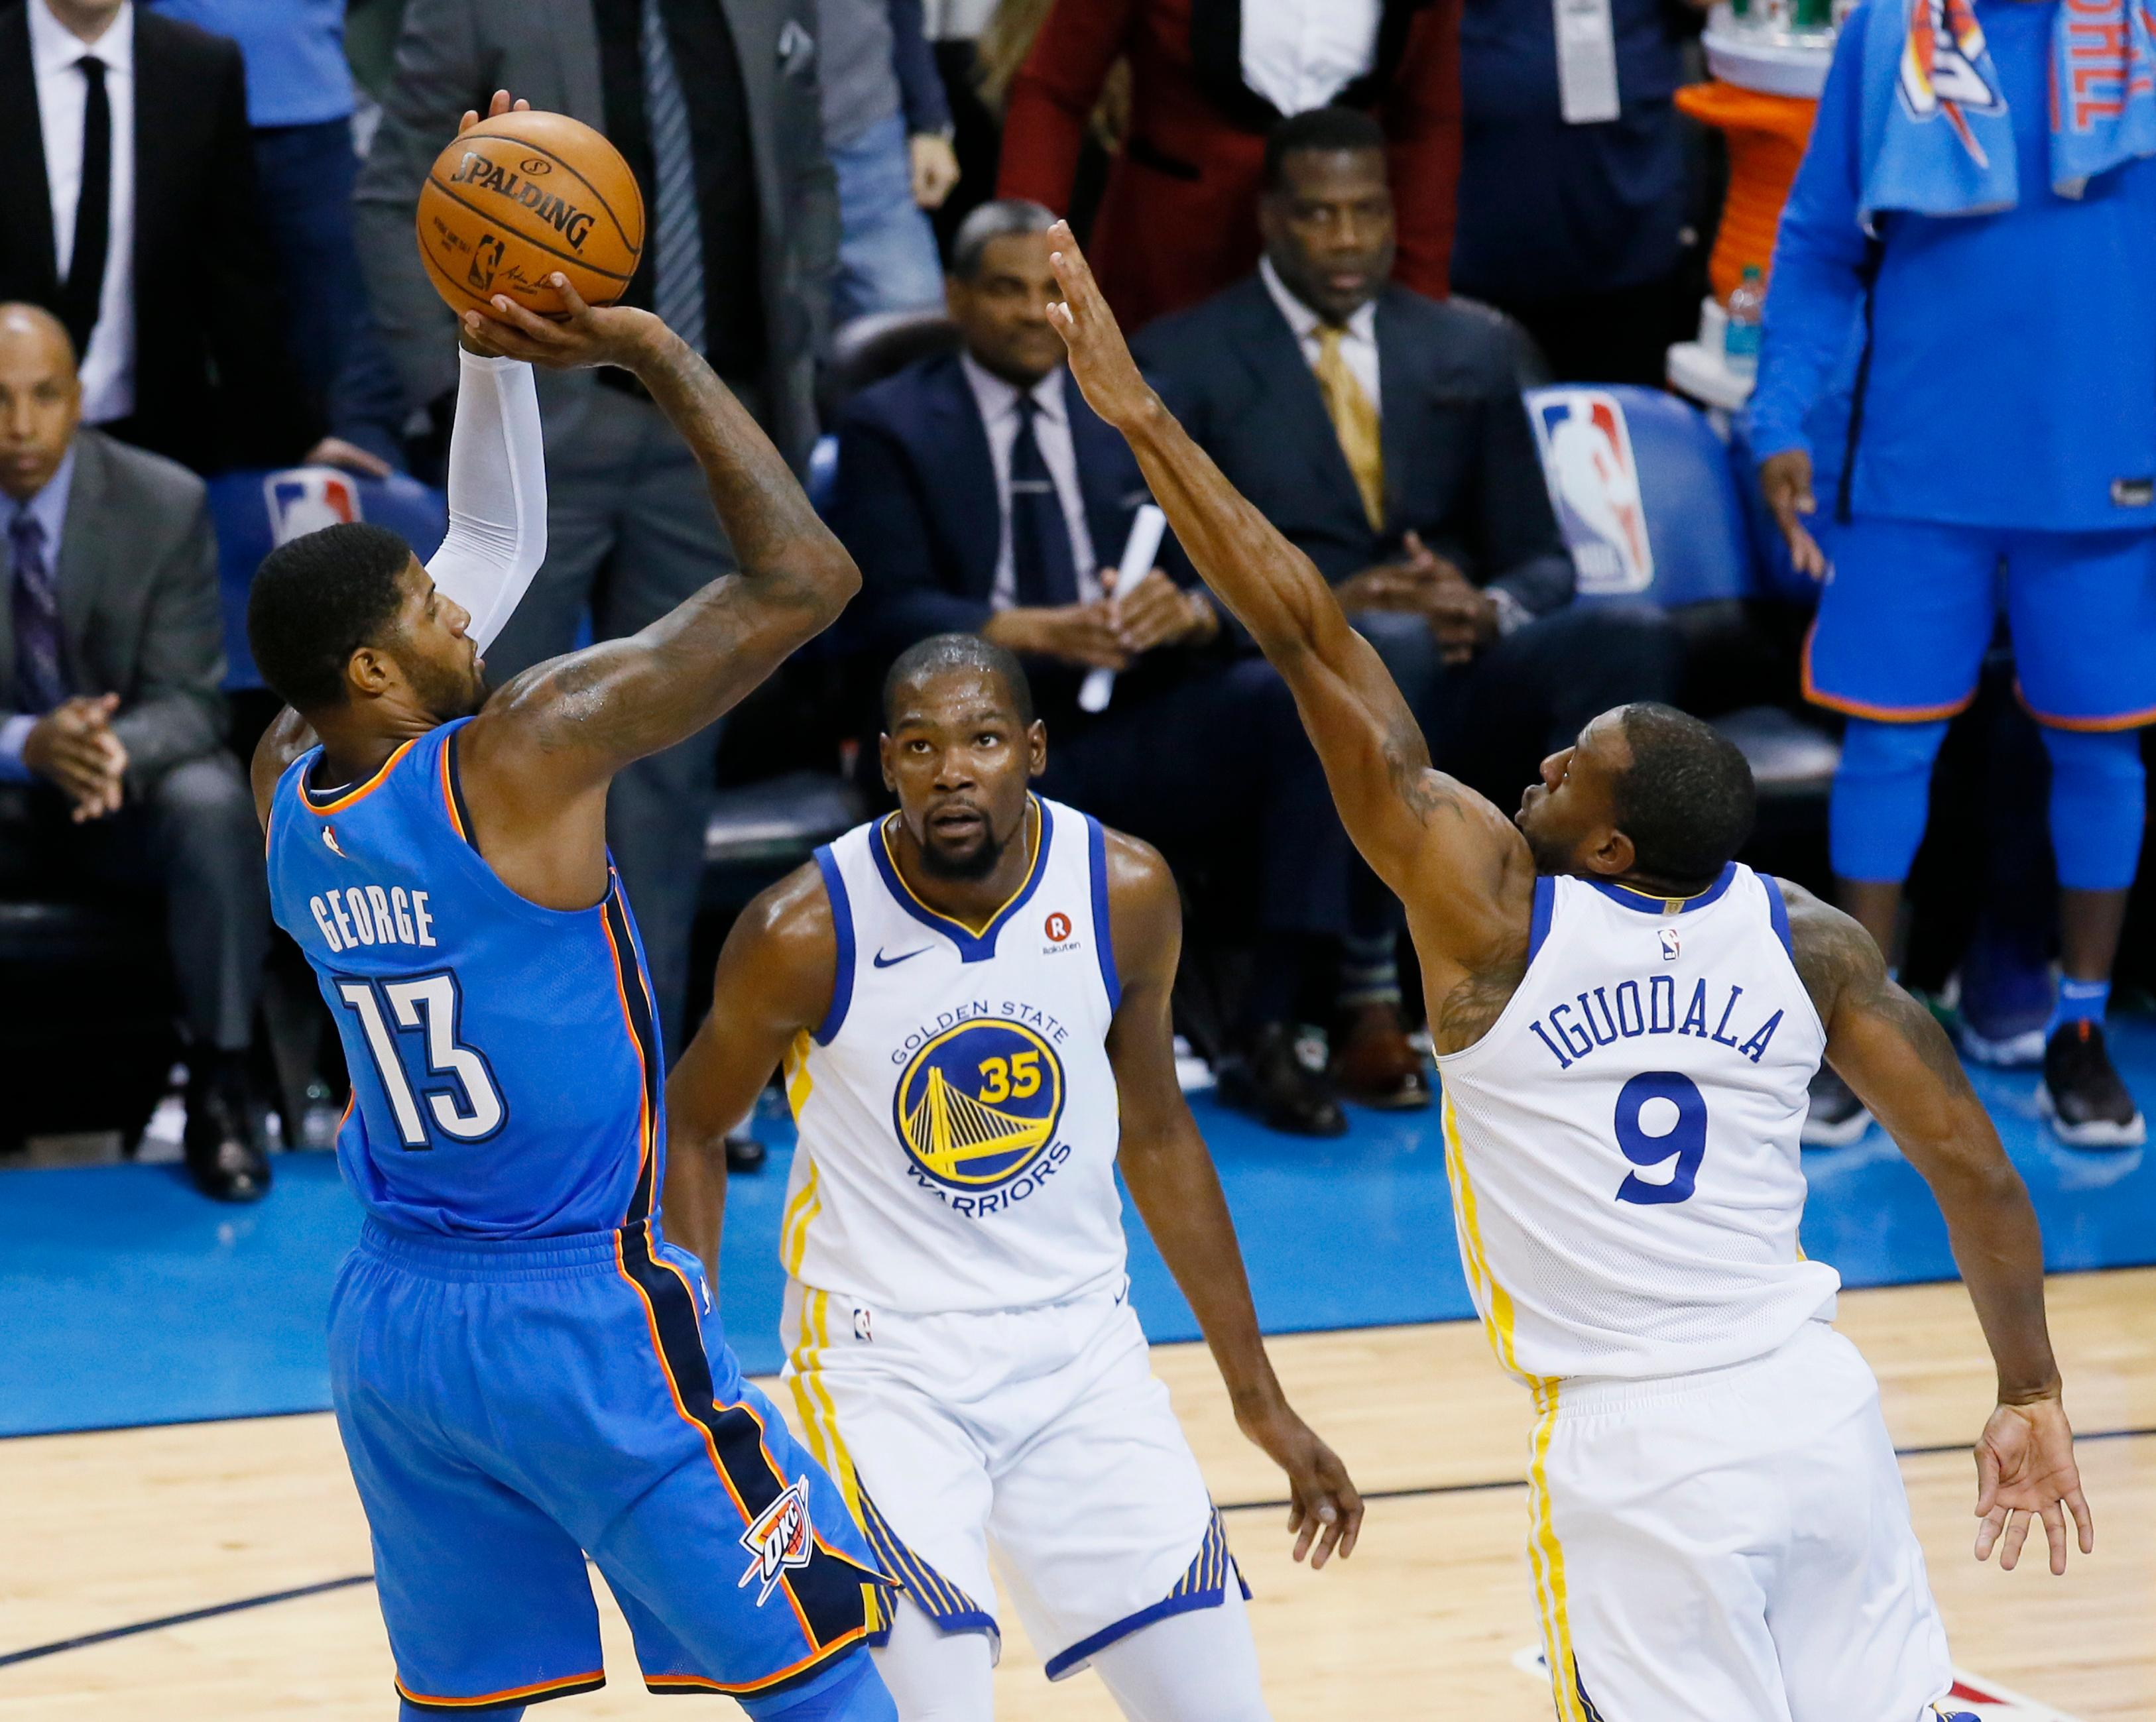 Oklahoma City Thunder forward Paul George (13) shoots over Golden State Warriors forward Kevin Durant (35) and forward Andre Iguodala (9) during the second quarter of an NBA basketball game in Oklahoma City, Wednesday, Nov. 22, 2017. (AP Photo/Sue Ogrocki)